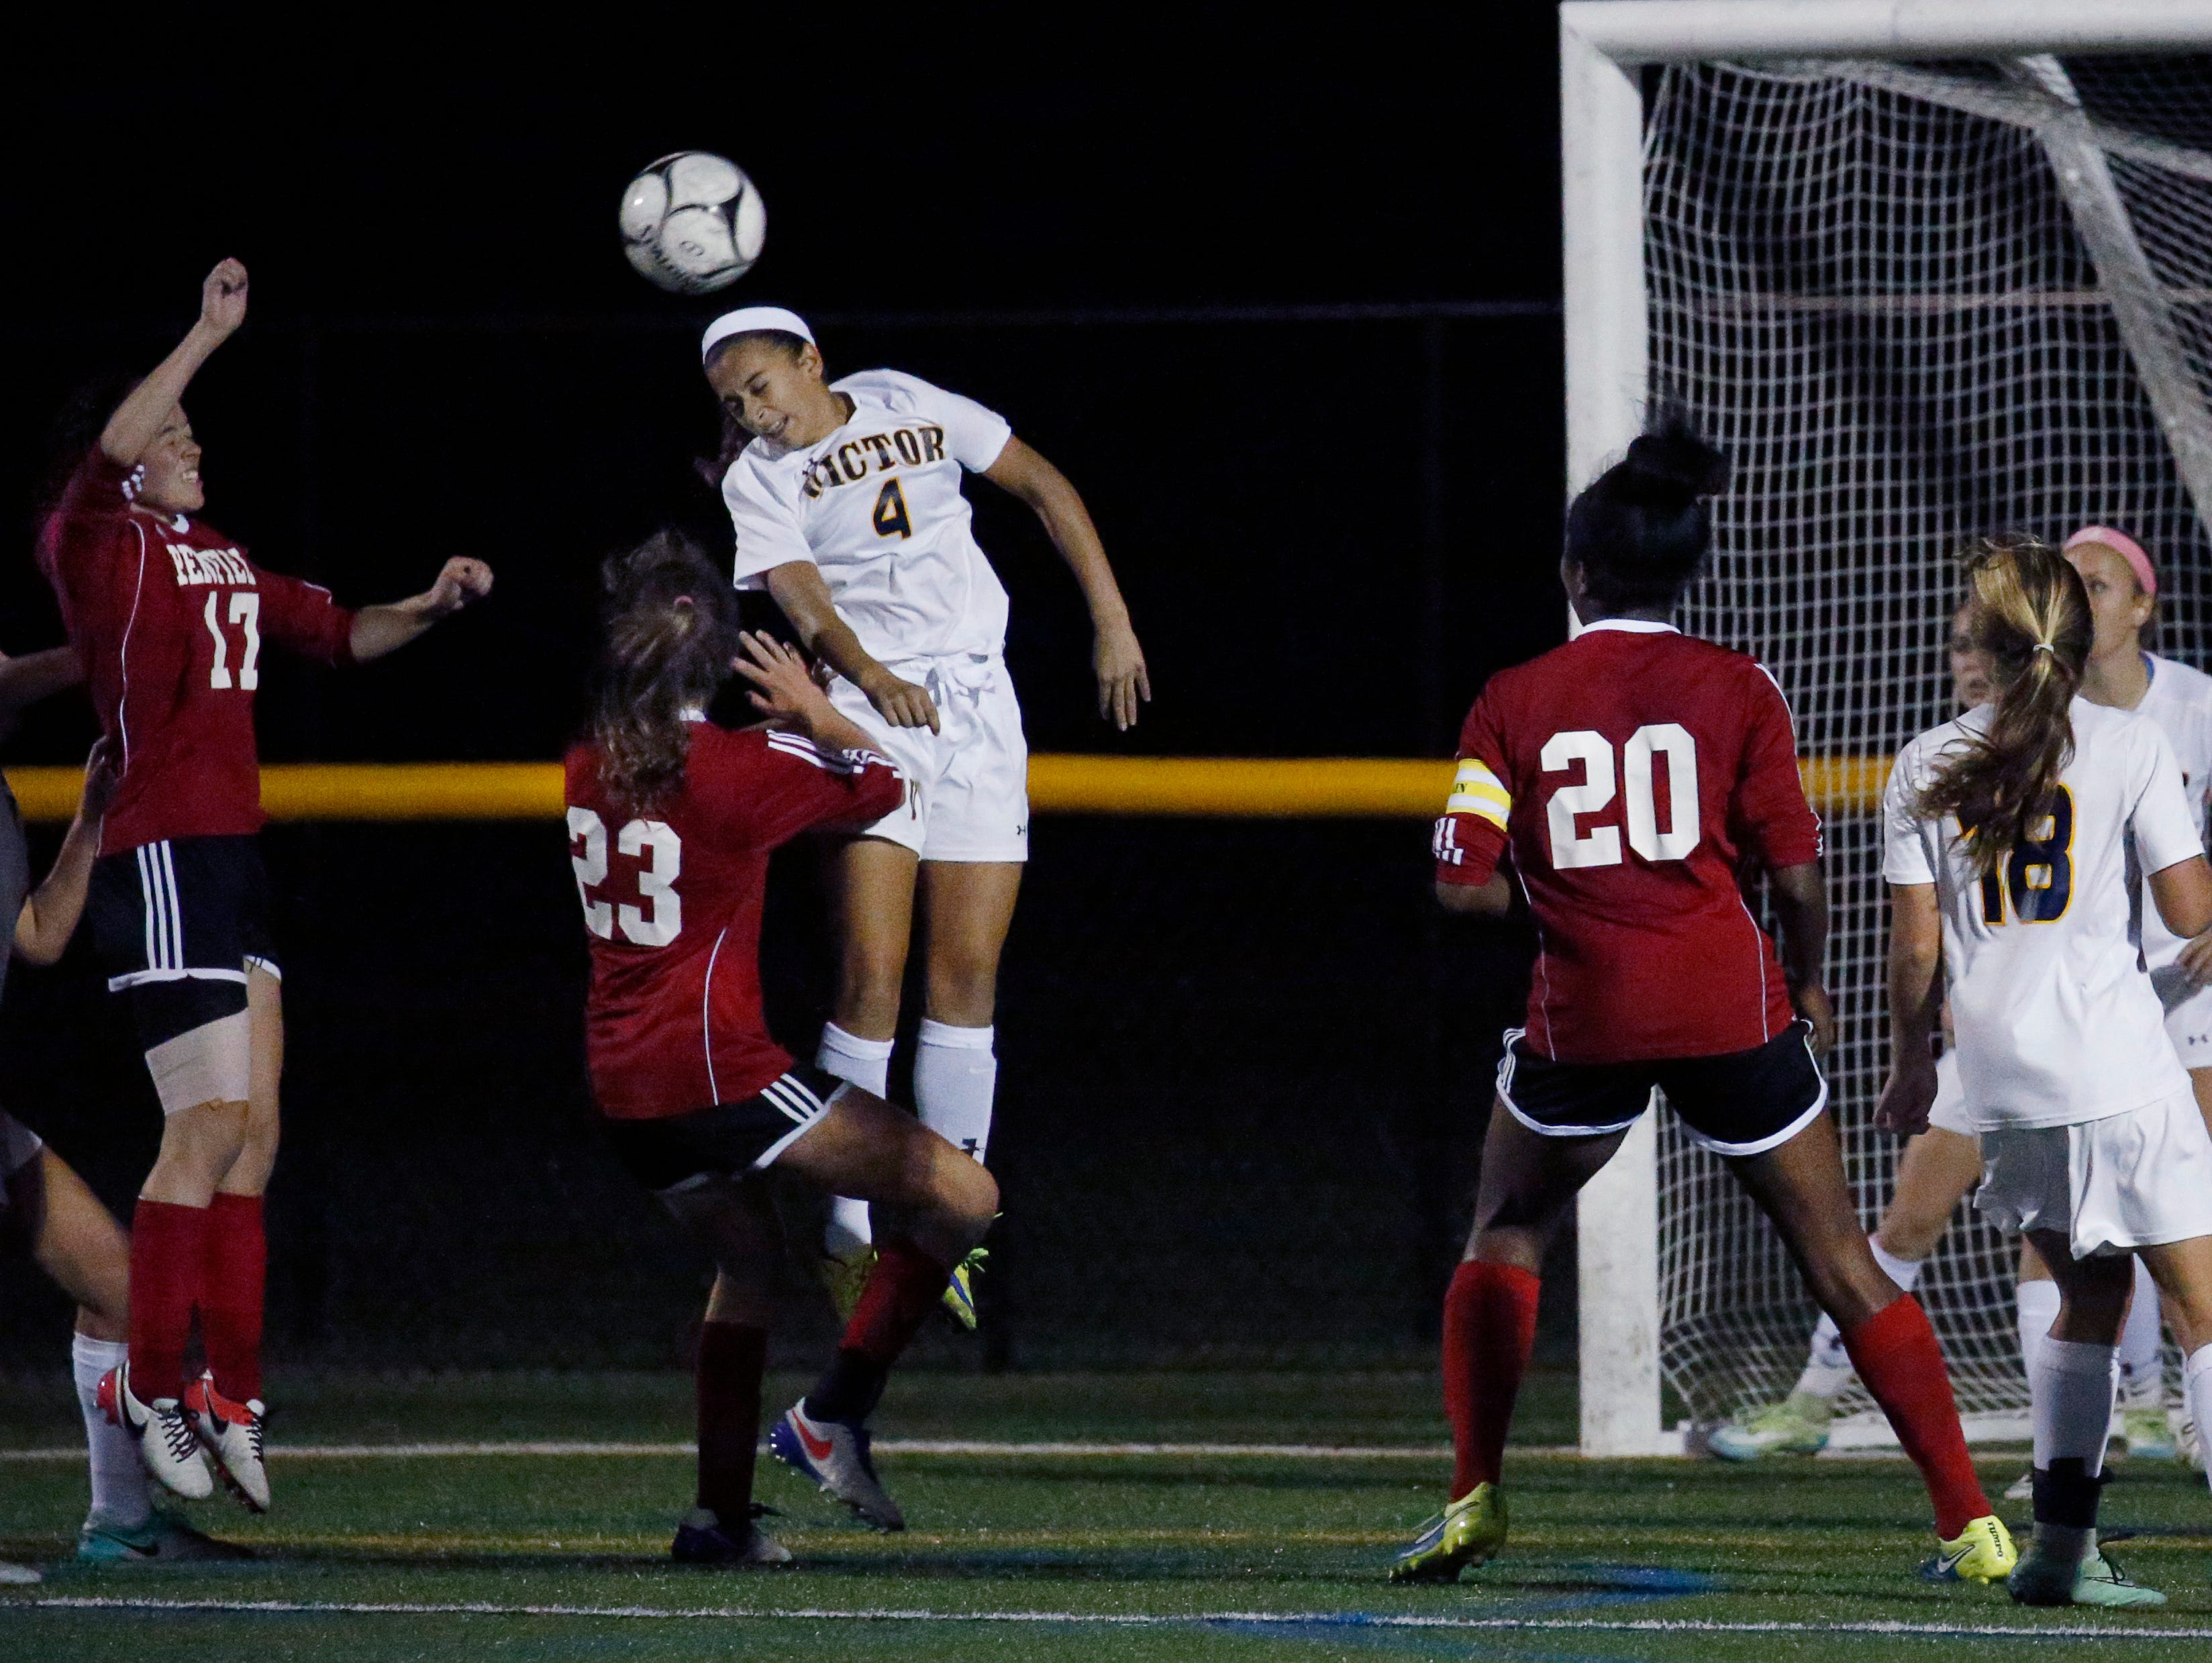 Victor's Olivia Damico jumps for the ball over Penfield players to defend the goal in the first half at Webster Schroeder High School.